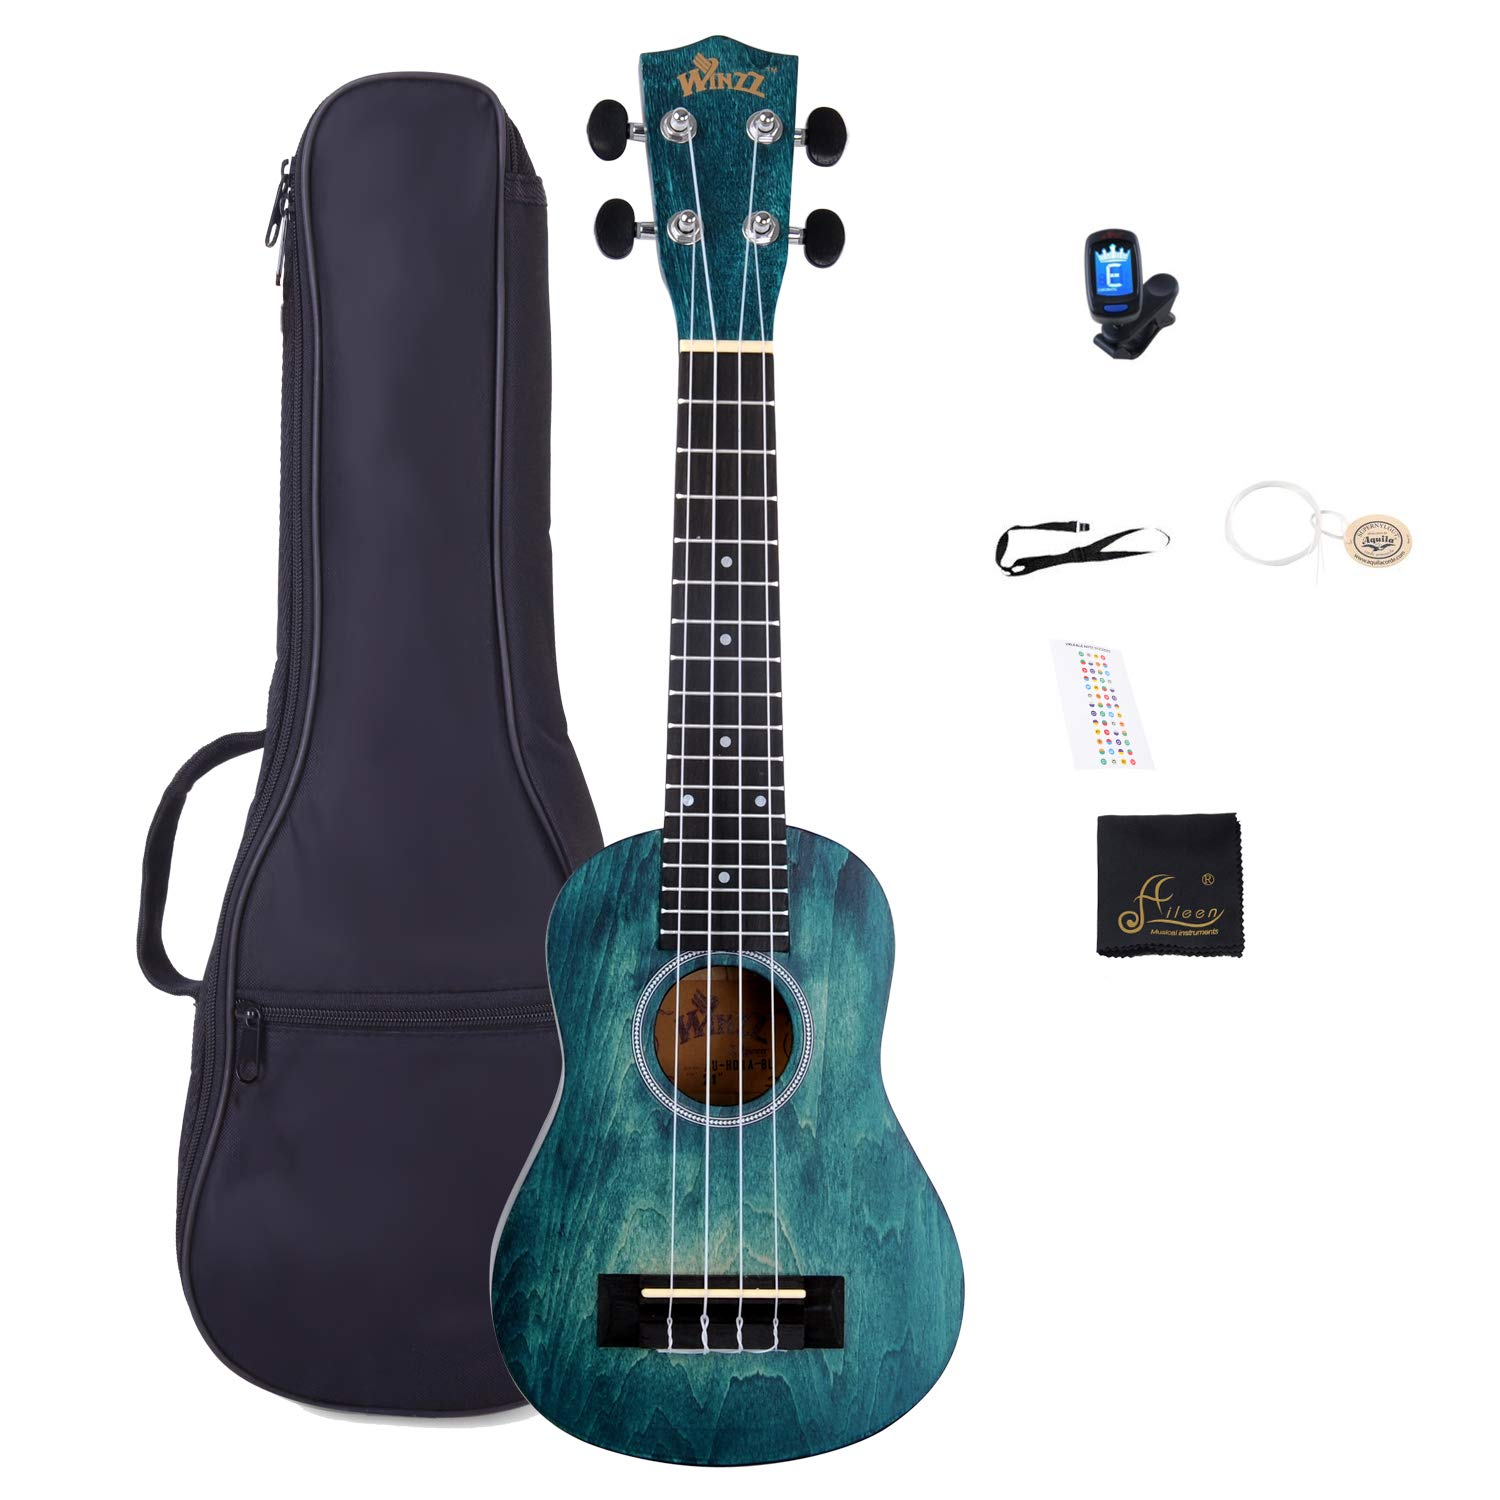 Soprano Vintage Hawaiian Ukulele WINZZ 21-inch with Bag, Tuner, Strap, Extra Strings, Fingerboard Sticker